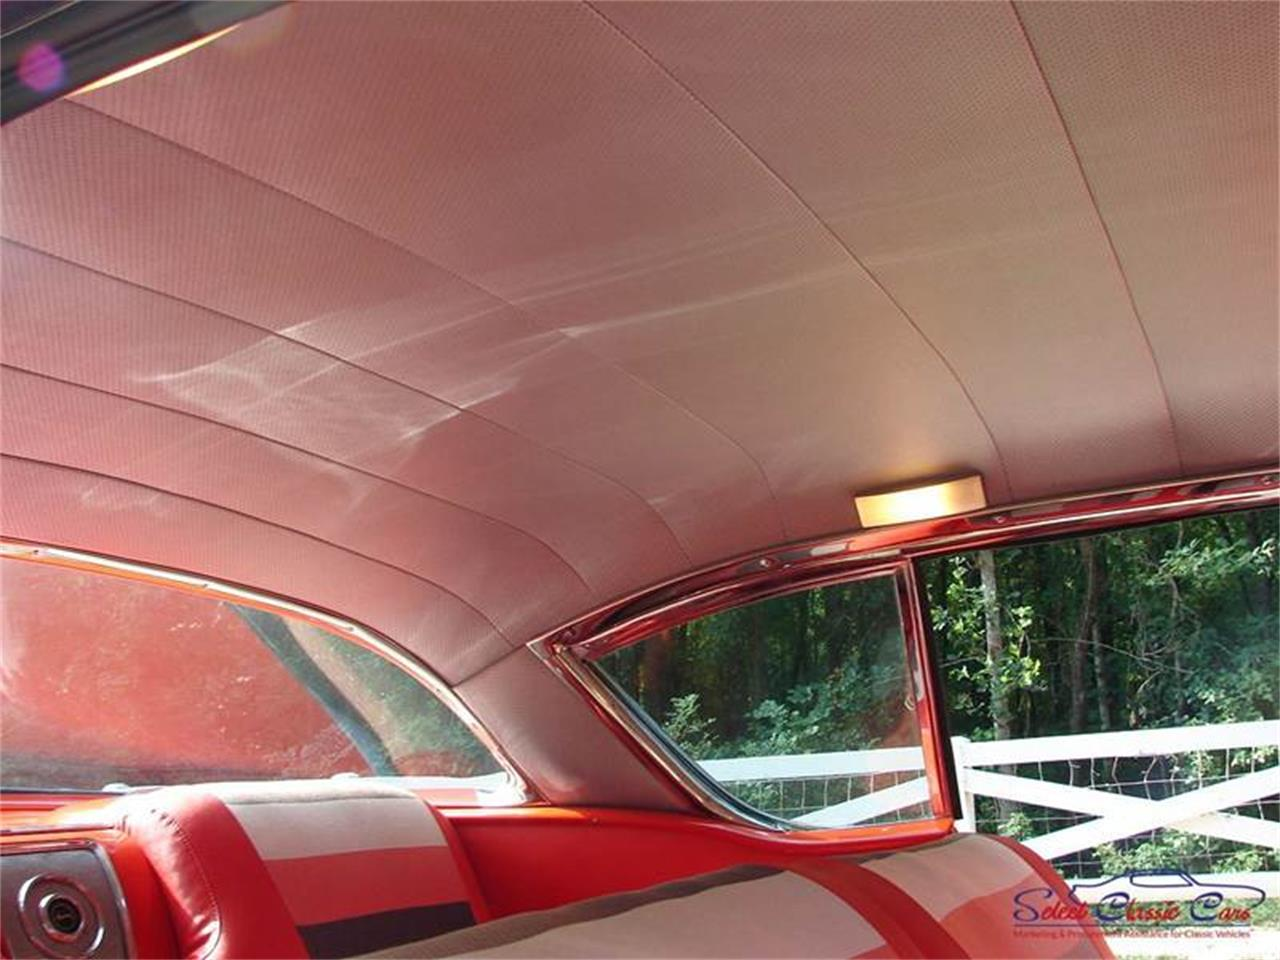 Large Picture of Classic '58 Chevrolet Impala located in Georgia - $49,500.00 Offered by Select Classic Cars - MG1I